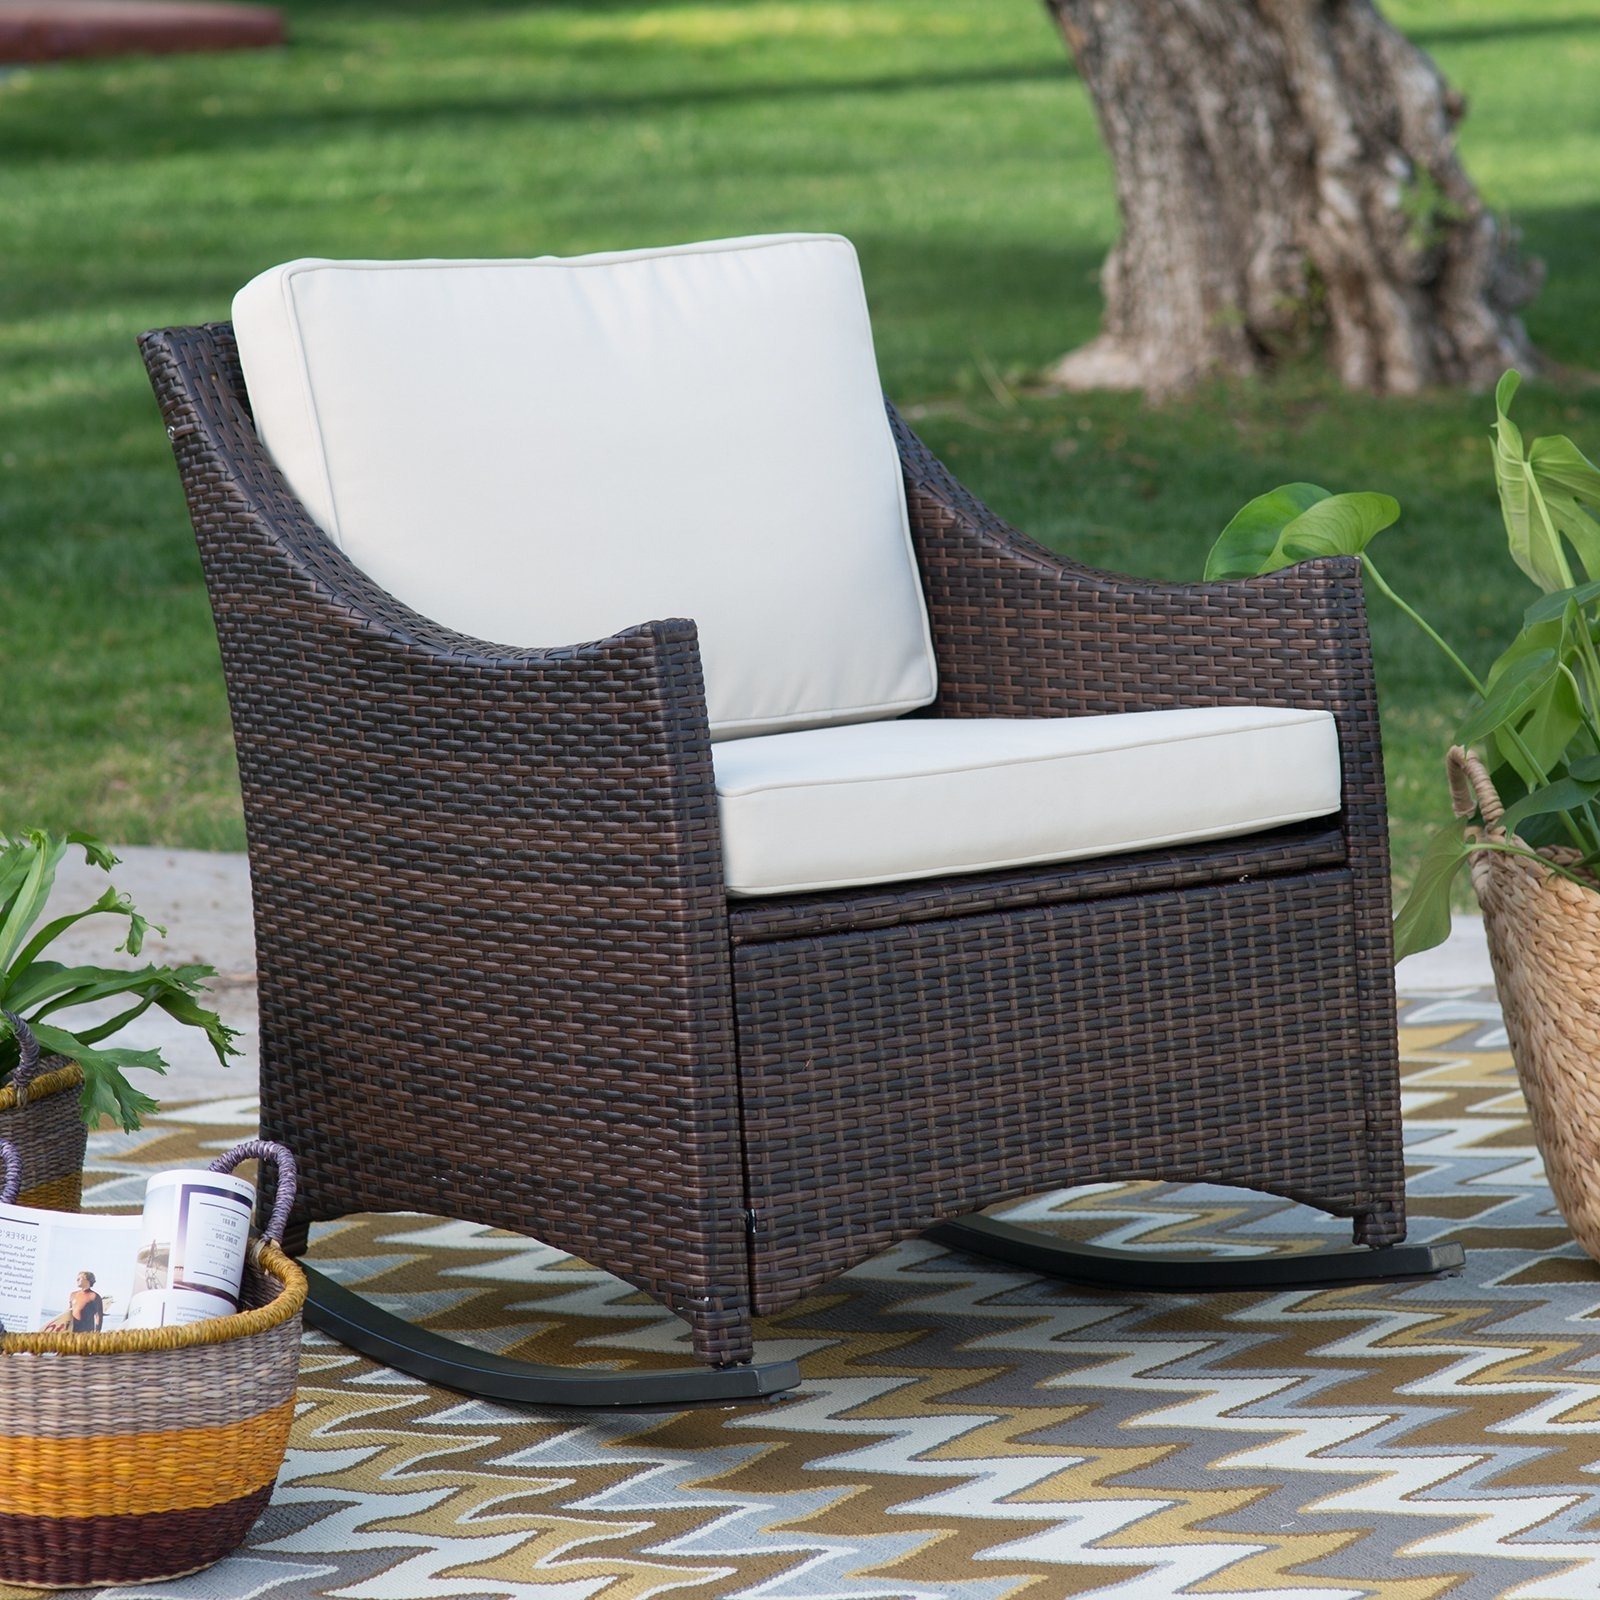 Most Up To Date Wicker Rocking Chairs For Outdoors Pertaining To Coral Coast Harrison Club Style Rocking Chair With Cushion – Walmart (View 5 of 15)